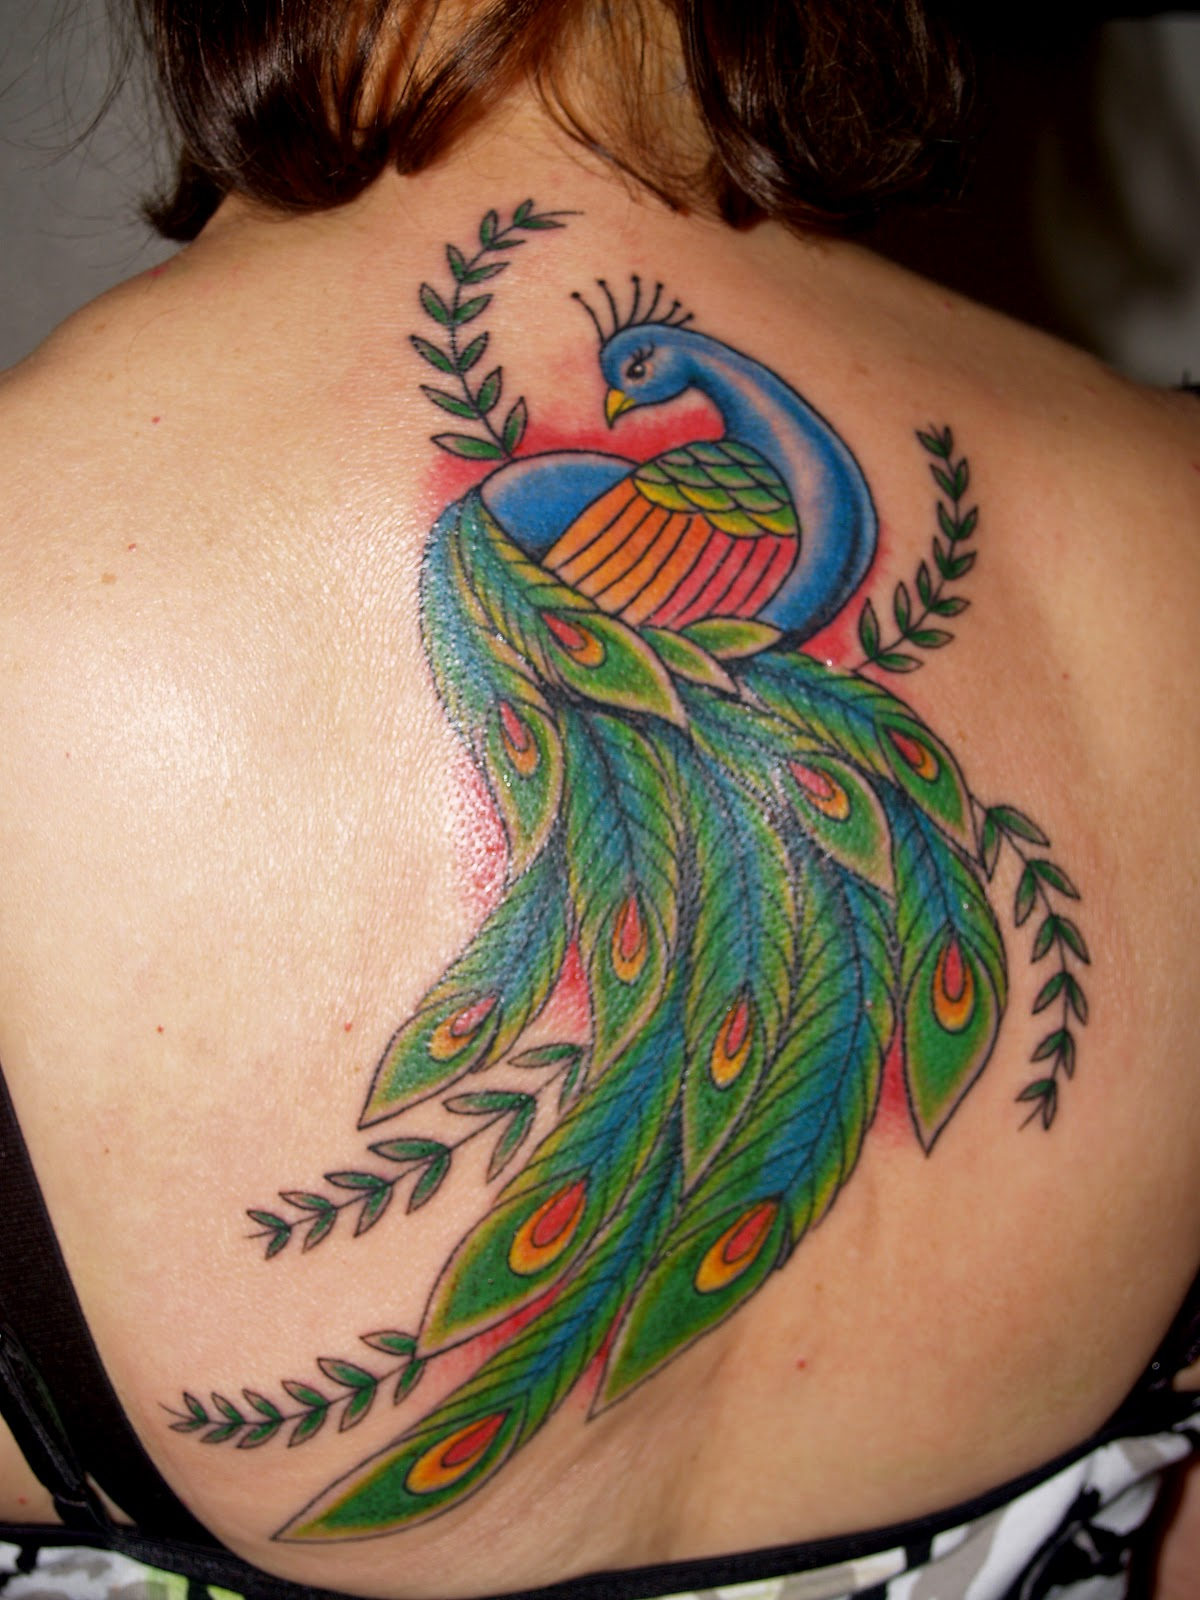 Peacock Tattoo: HECTOR LOPEZ TATTOOING: Peacock Tattoo